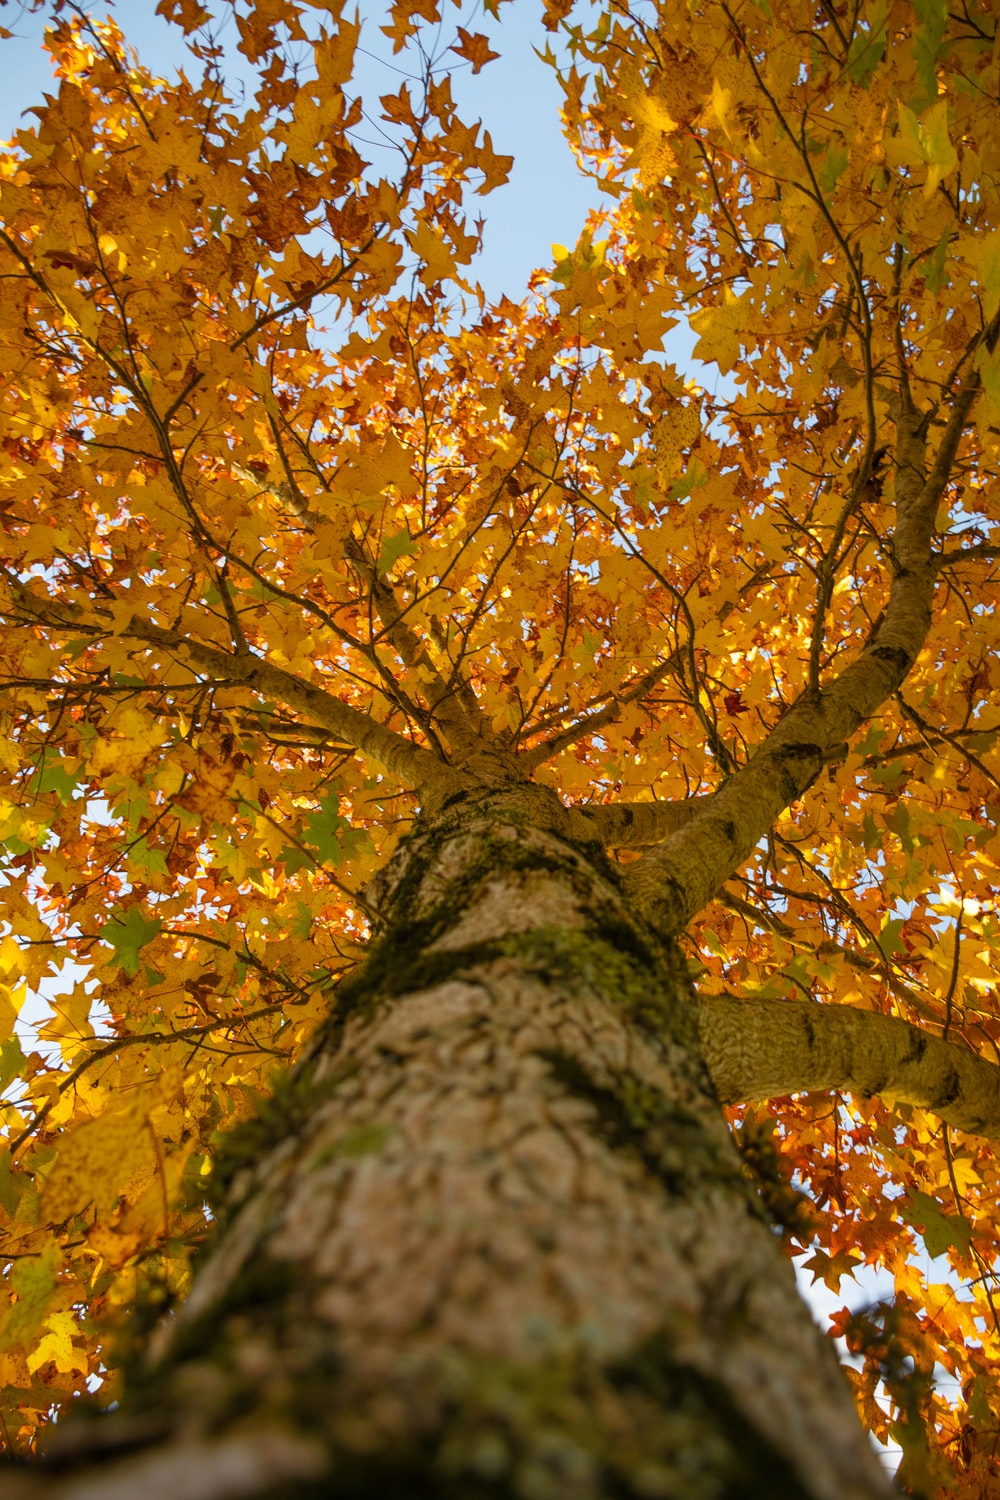 brown and yellow leaves on tree